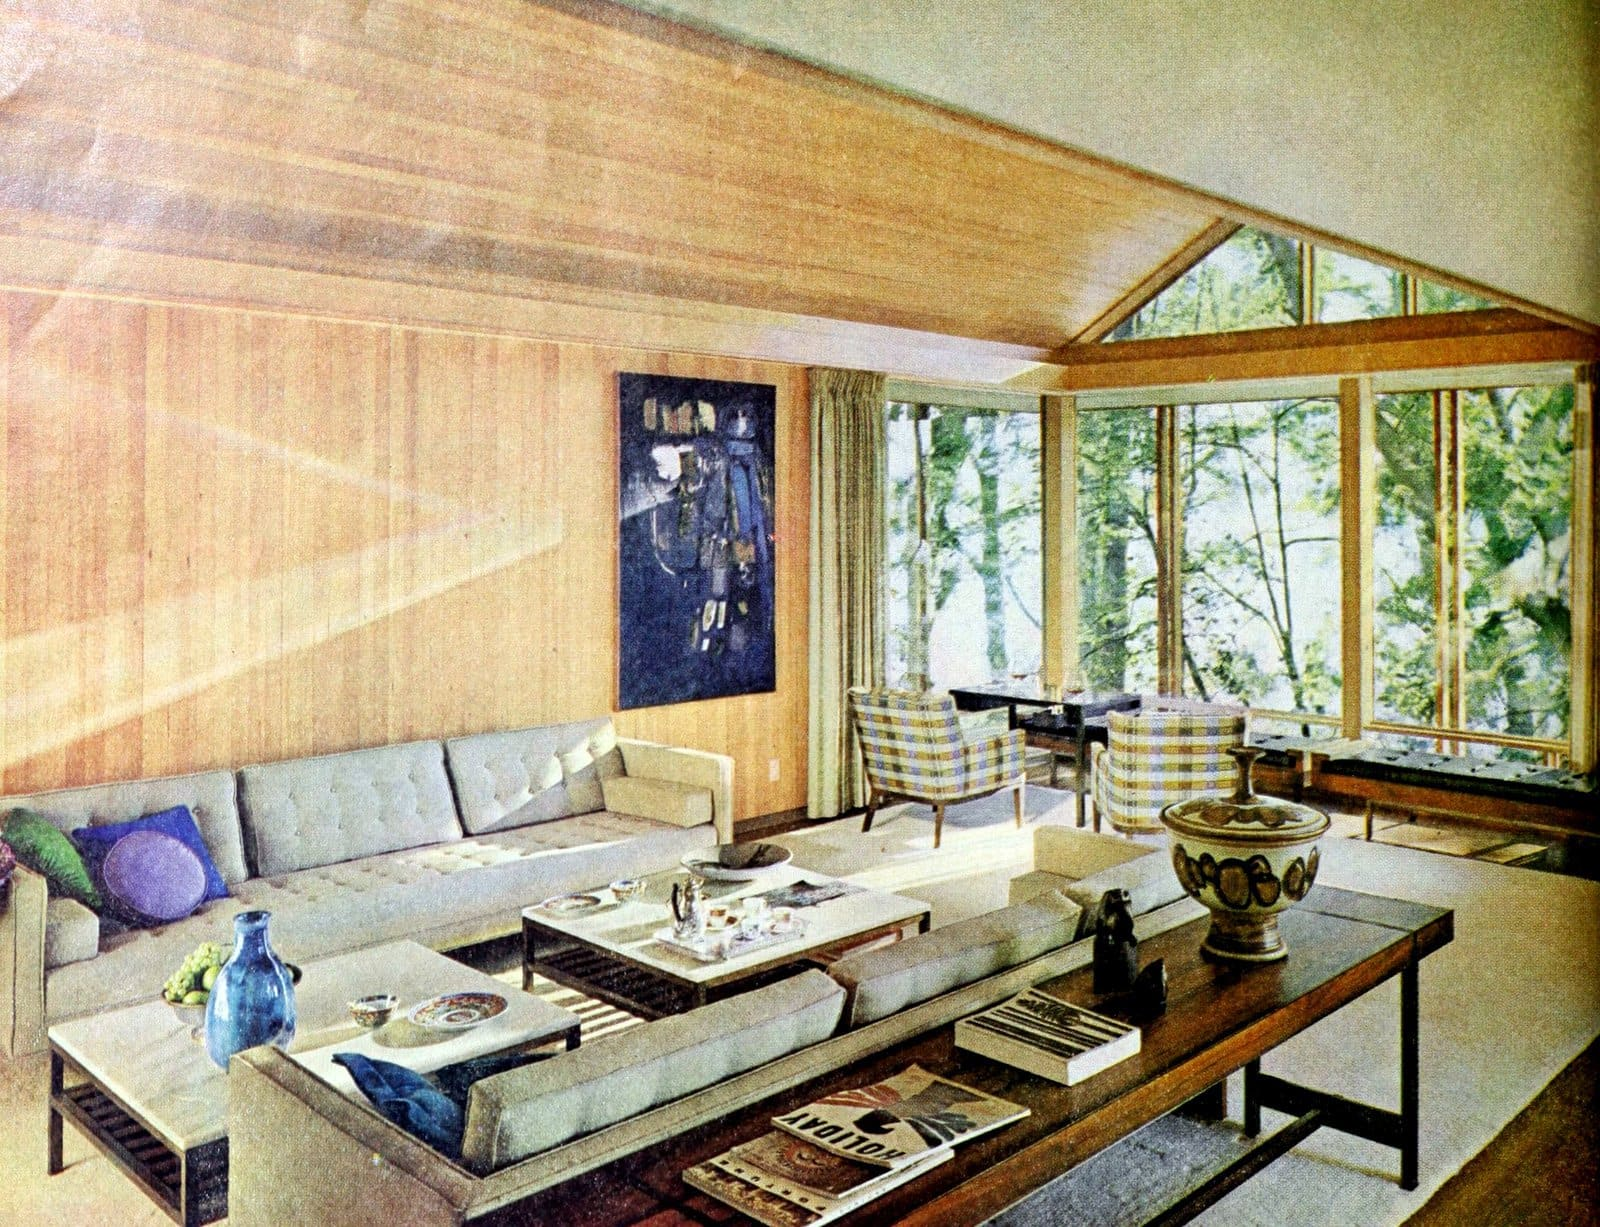 Light and airy retro sixties living room style